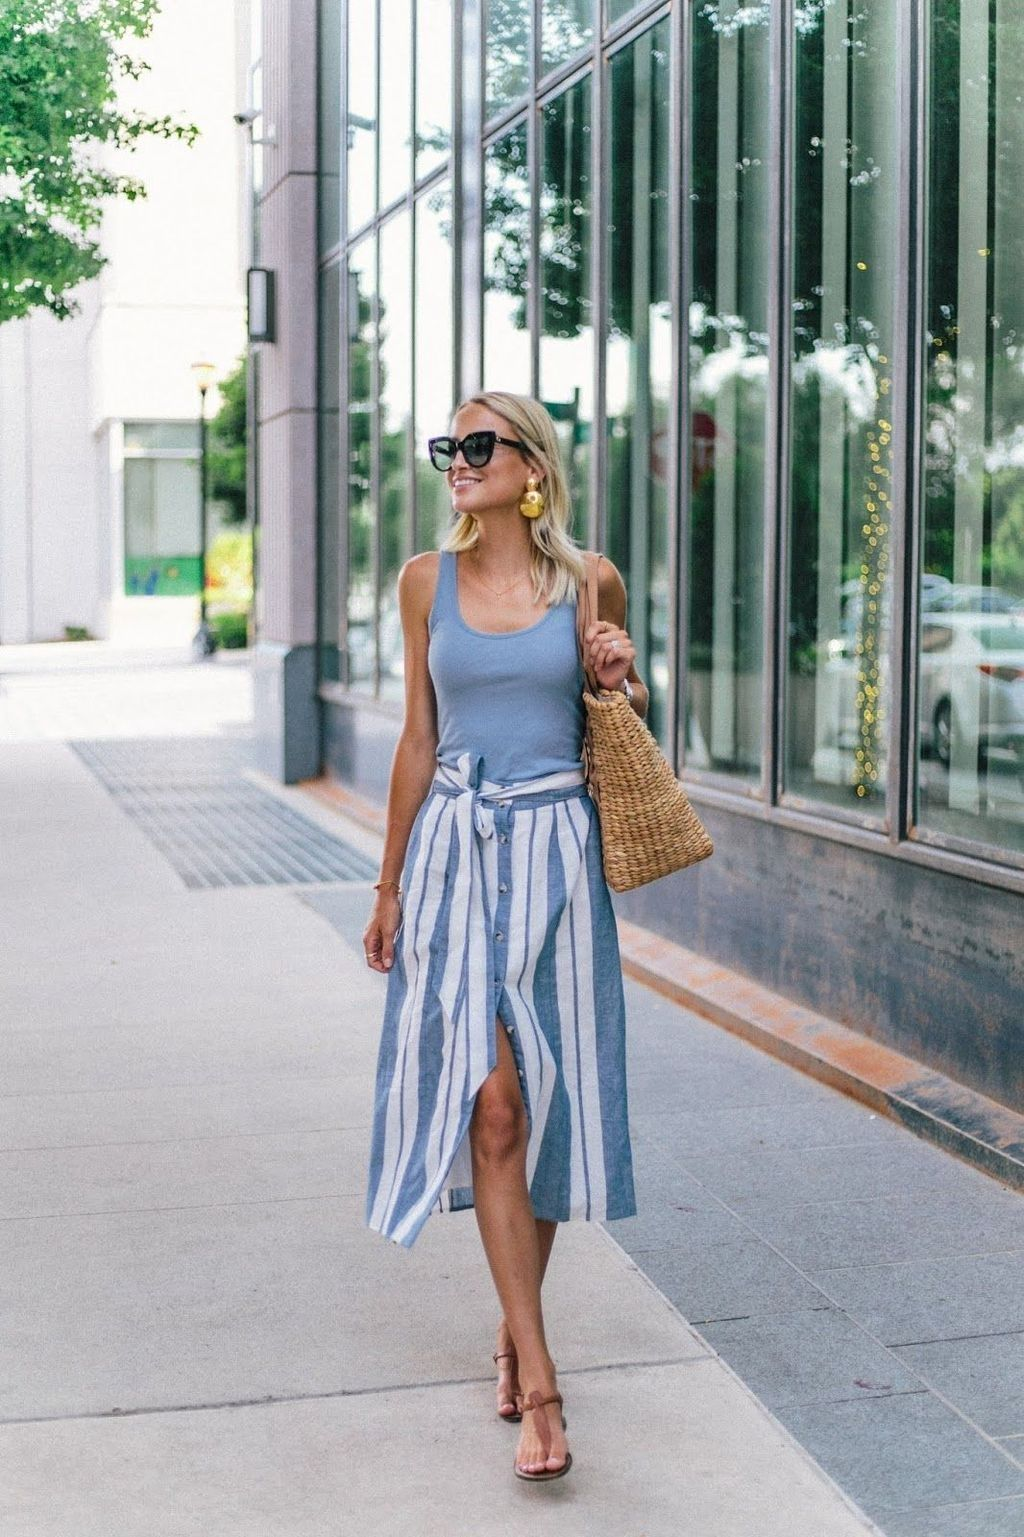 48 Wonderful Midi Skirt Outfit Ideas For Spring And Summer 2018 Addicfashion Midi Skirt Outfit Beach Outfit Women Spring Dresses Casual [ 1537 x 1024 Pixel ]